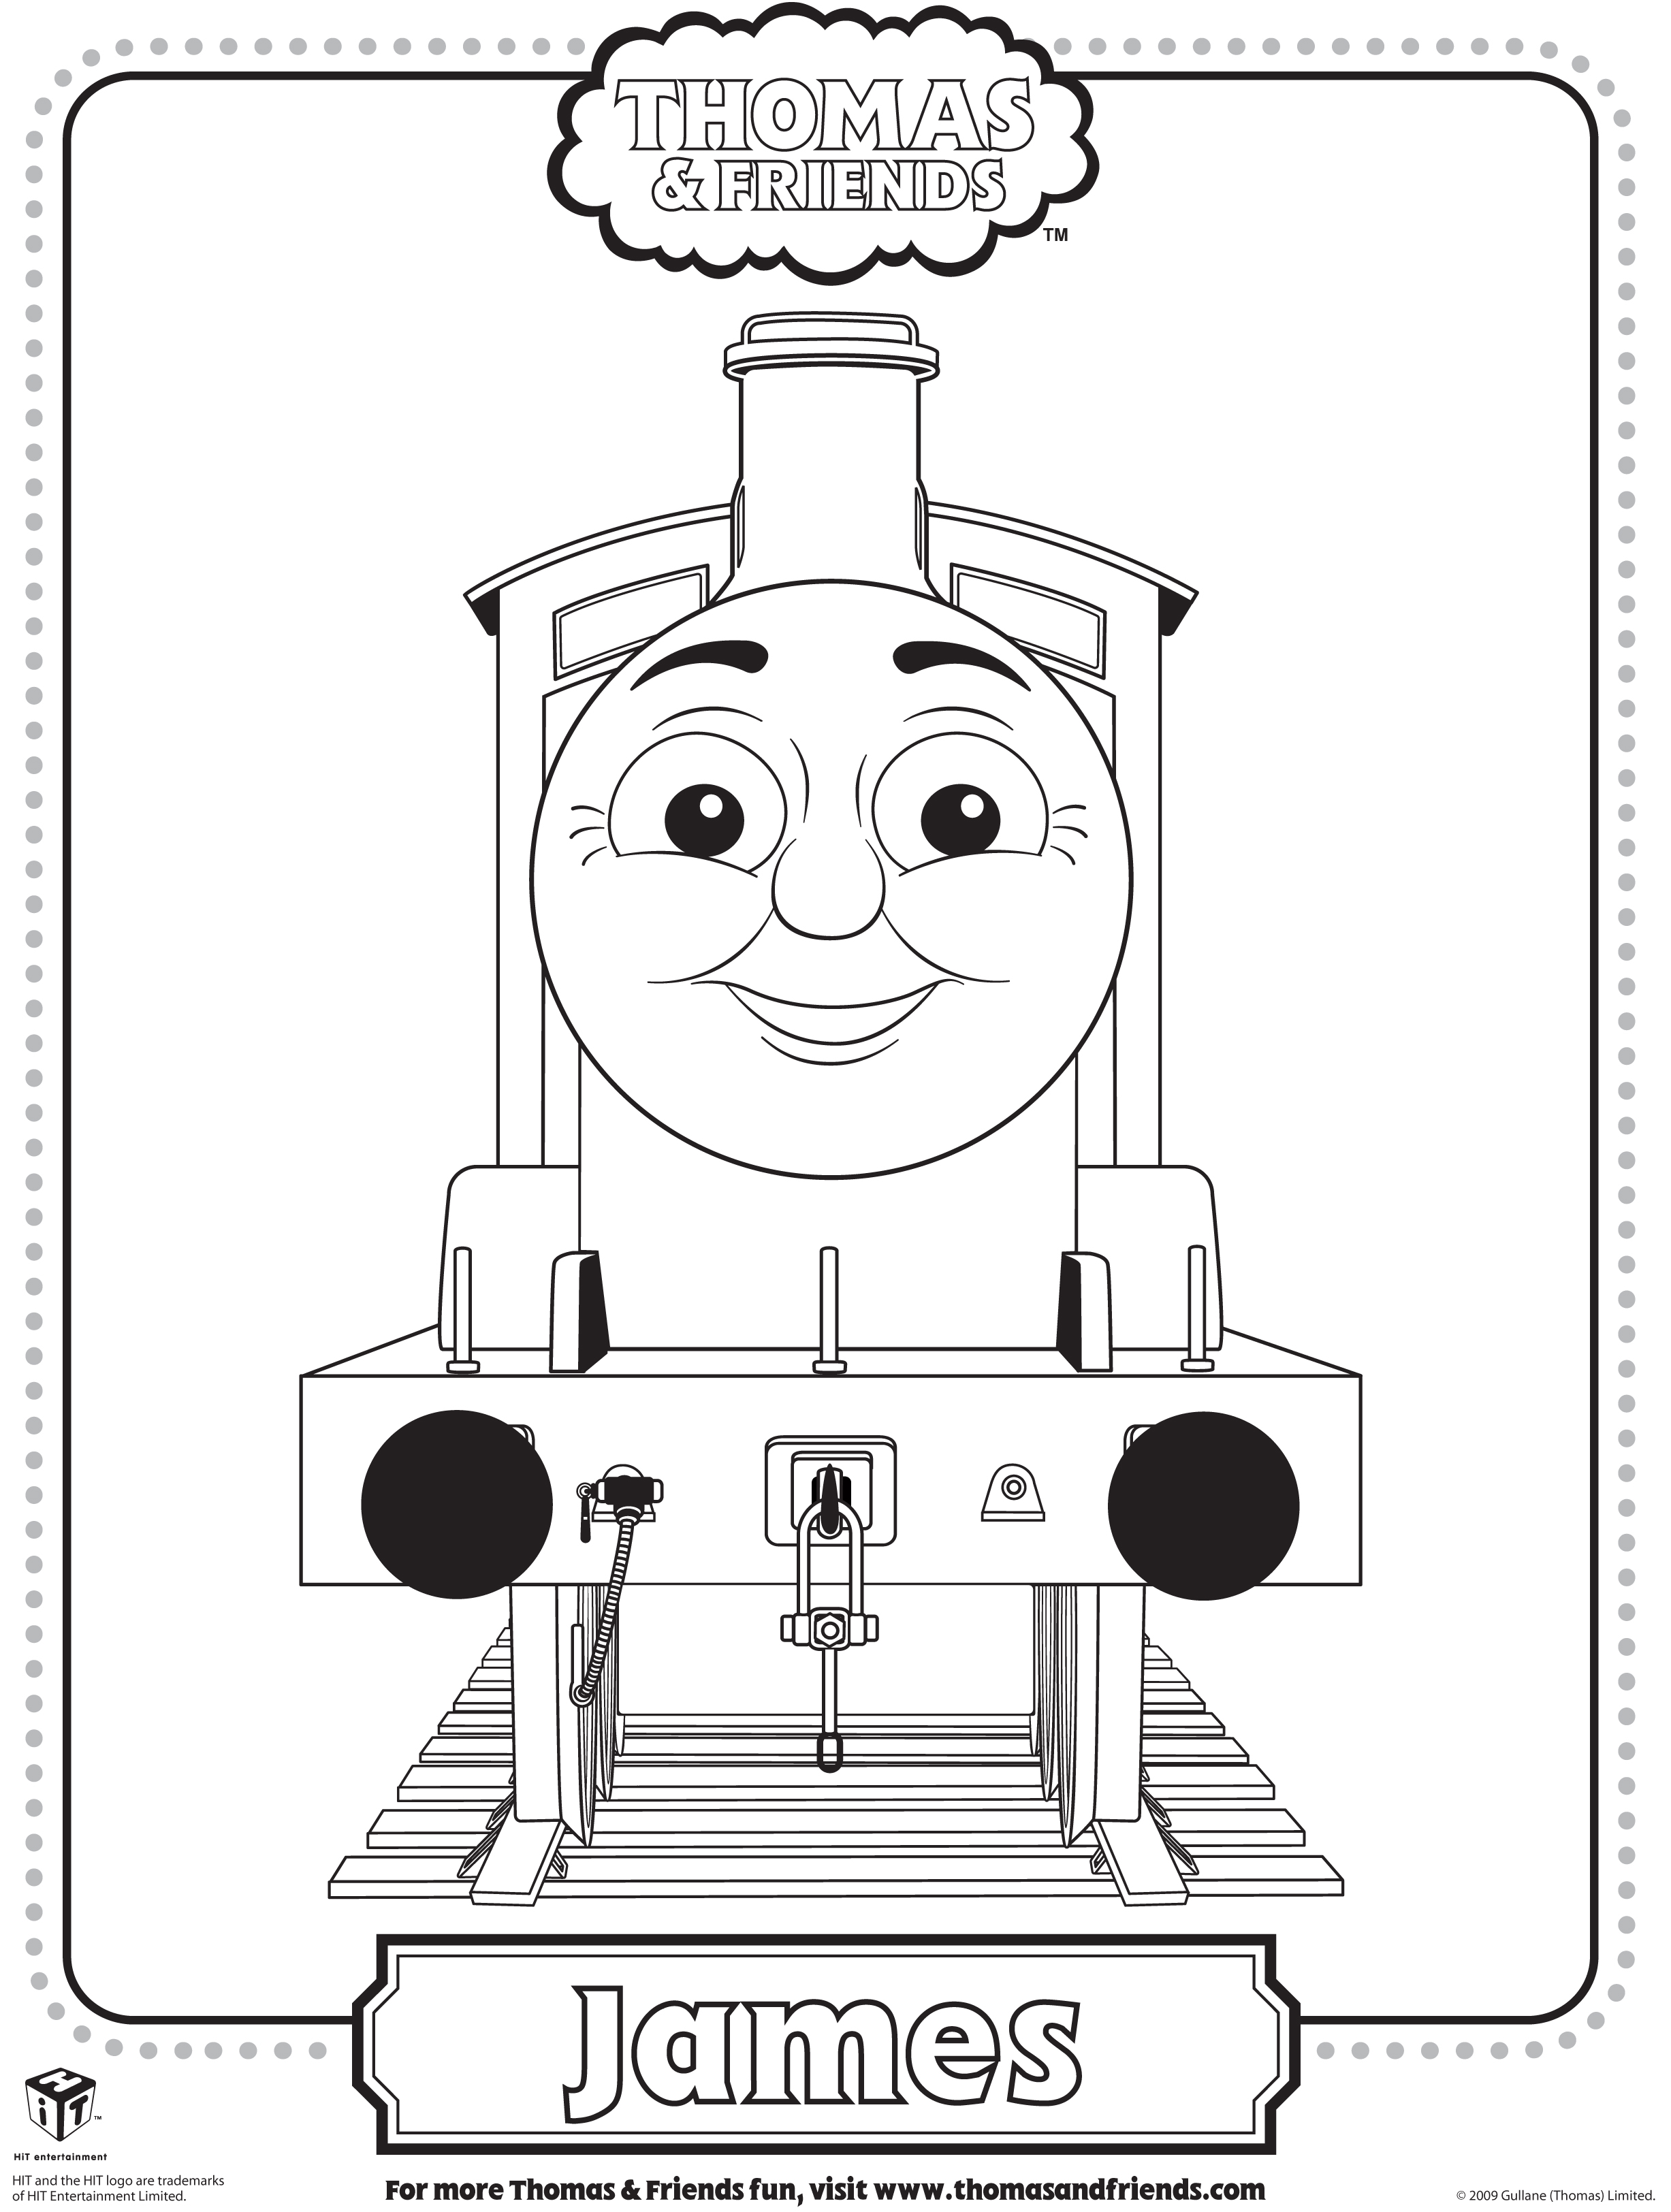 thomas and friend coloring pages - photo#20